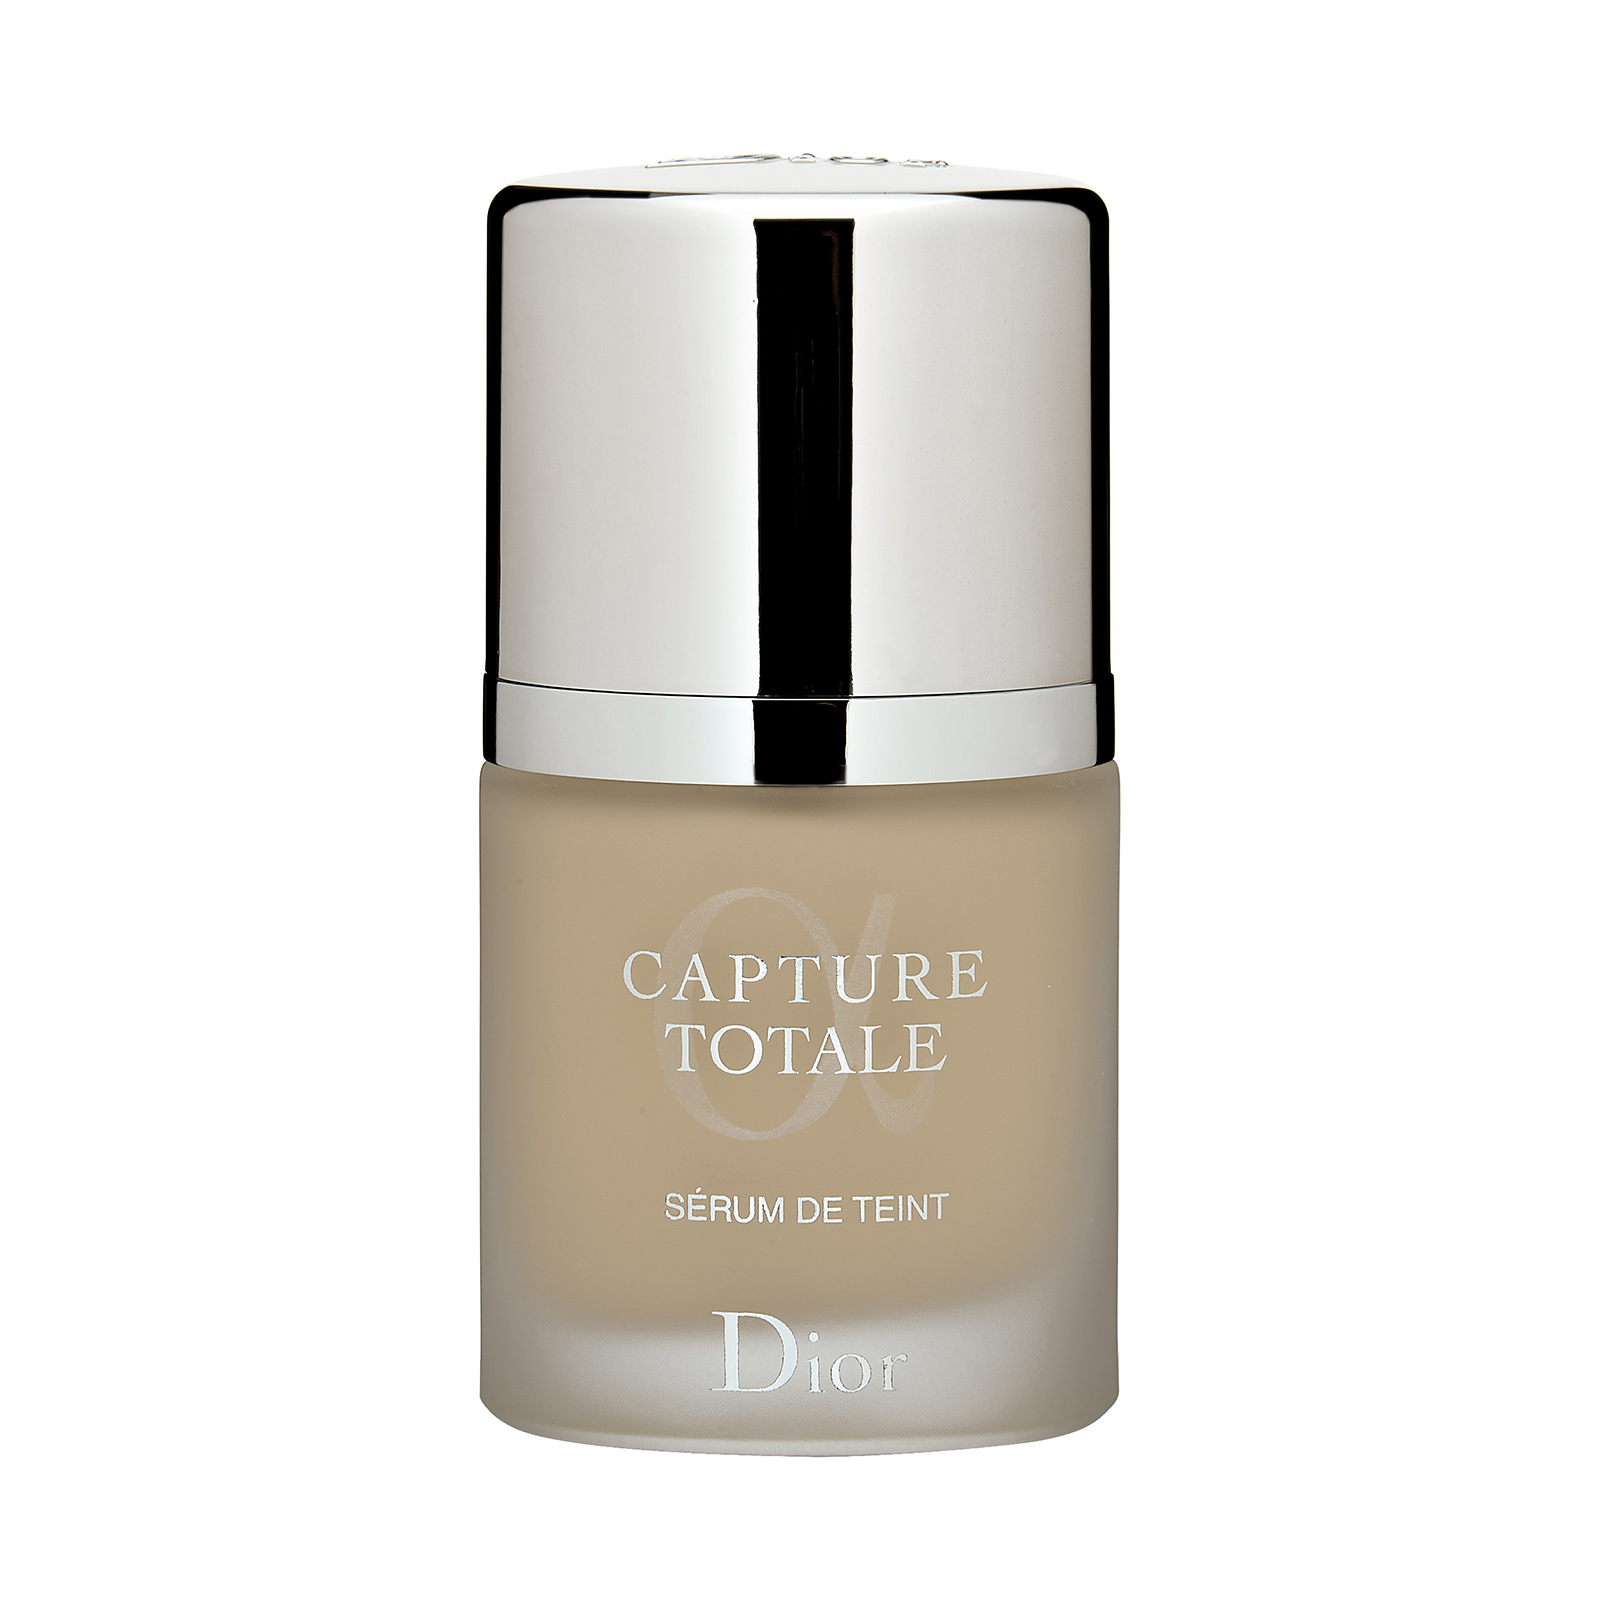 Christian Dior Capture Totale Triple Correcting Serum Foundation FPS 25 SPF 022 Cameo, 1oz, 30ml